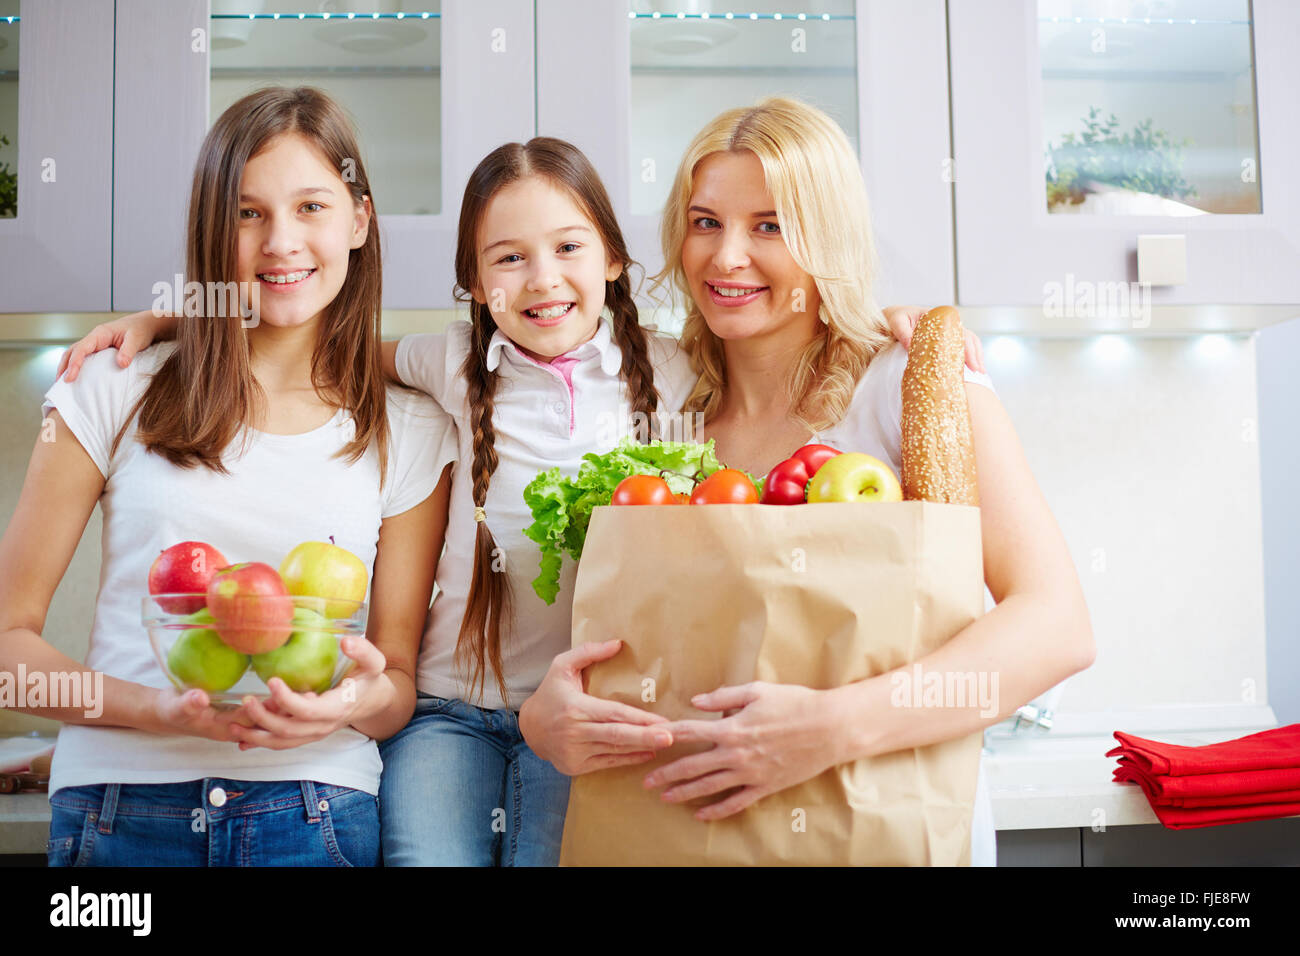 Young family in the kitchen with a bag of groceries shopping - Stock Image